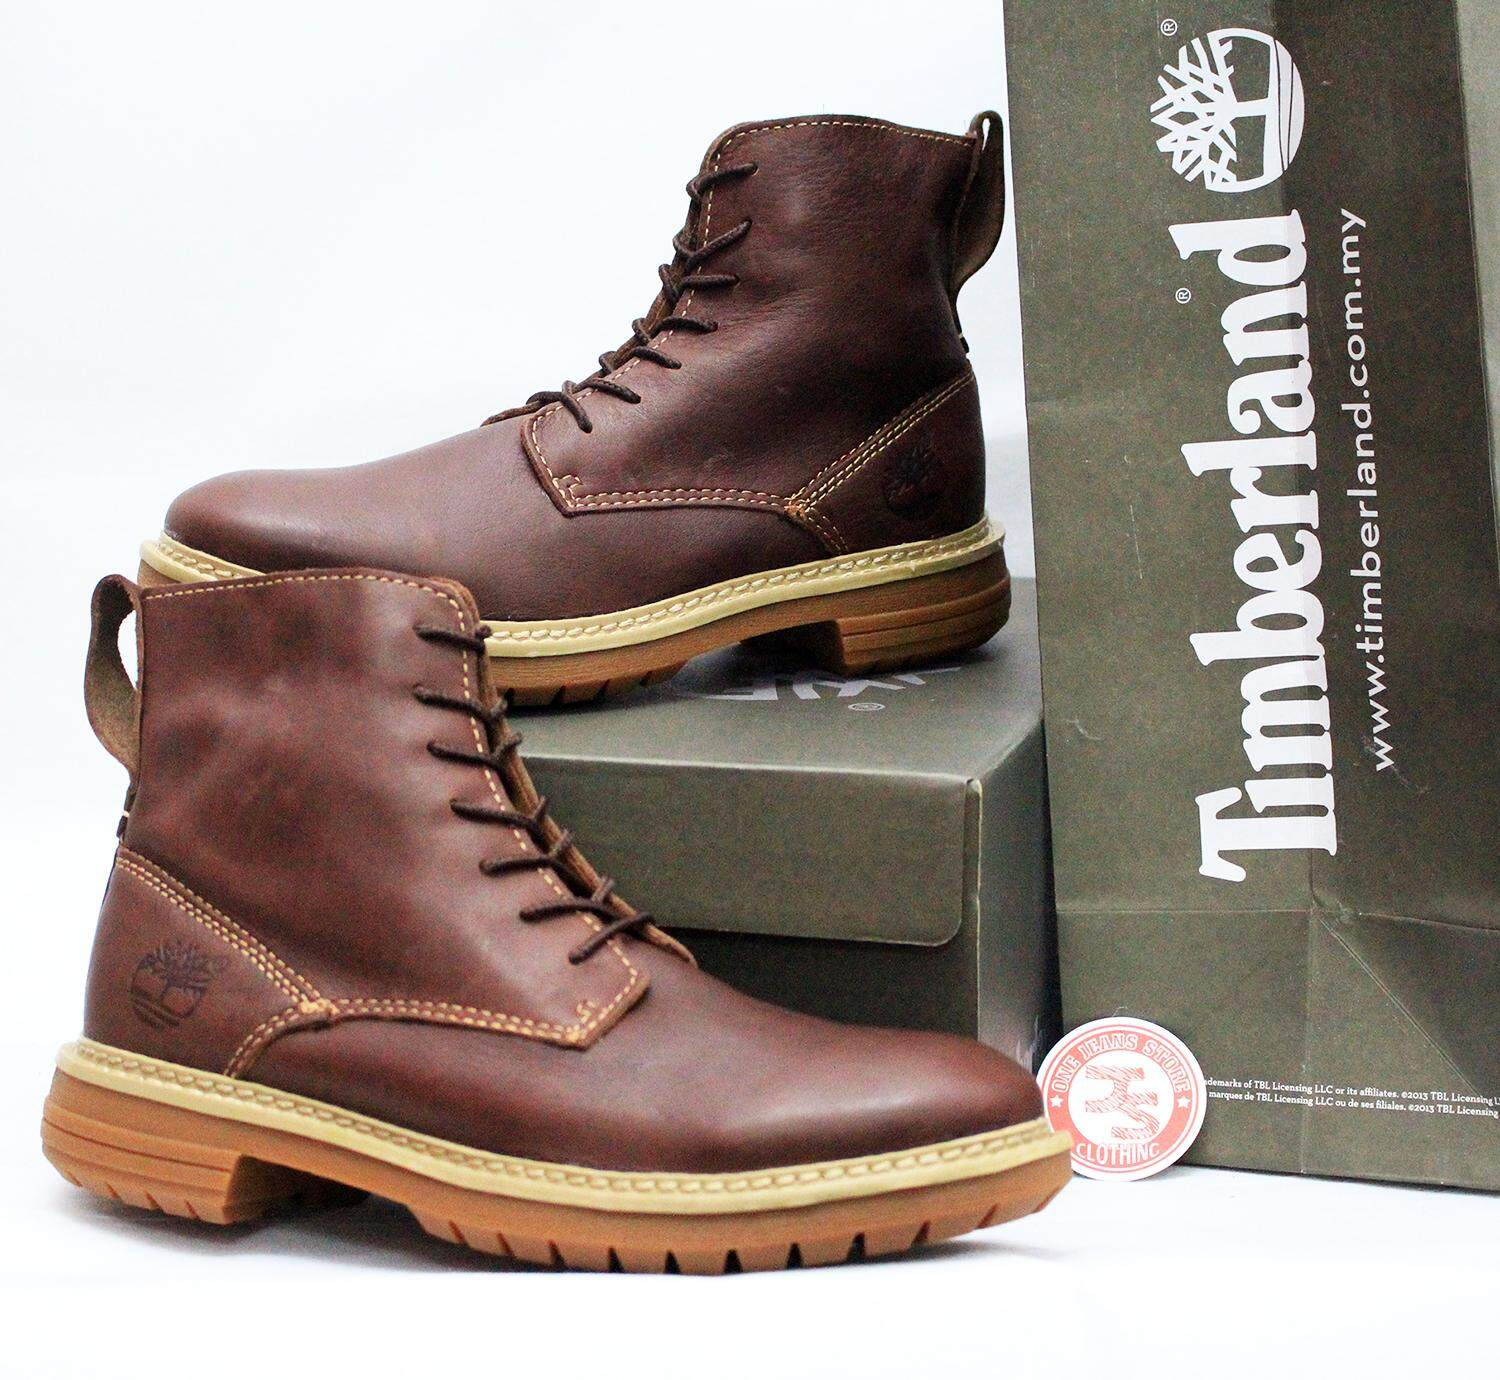 4e6e4e81134 Timberland Men s Boots price in Malaysia - Best Timberland Men s ...